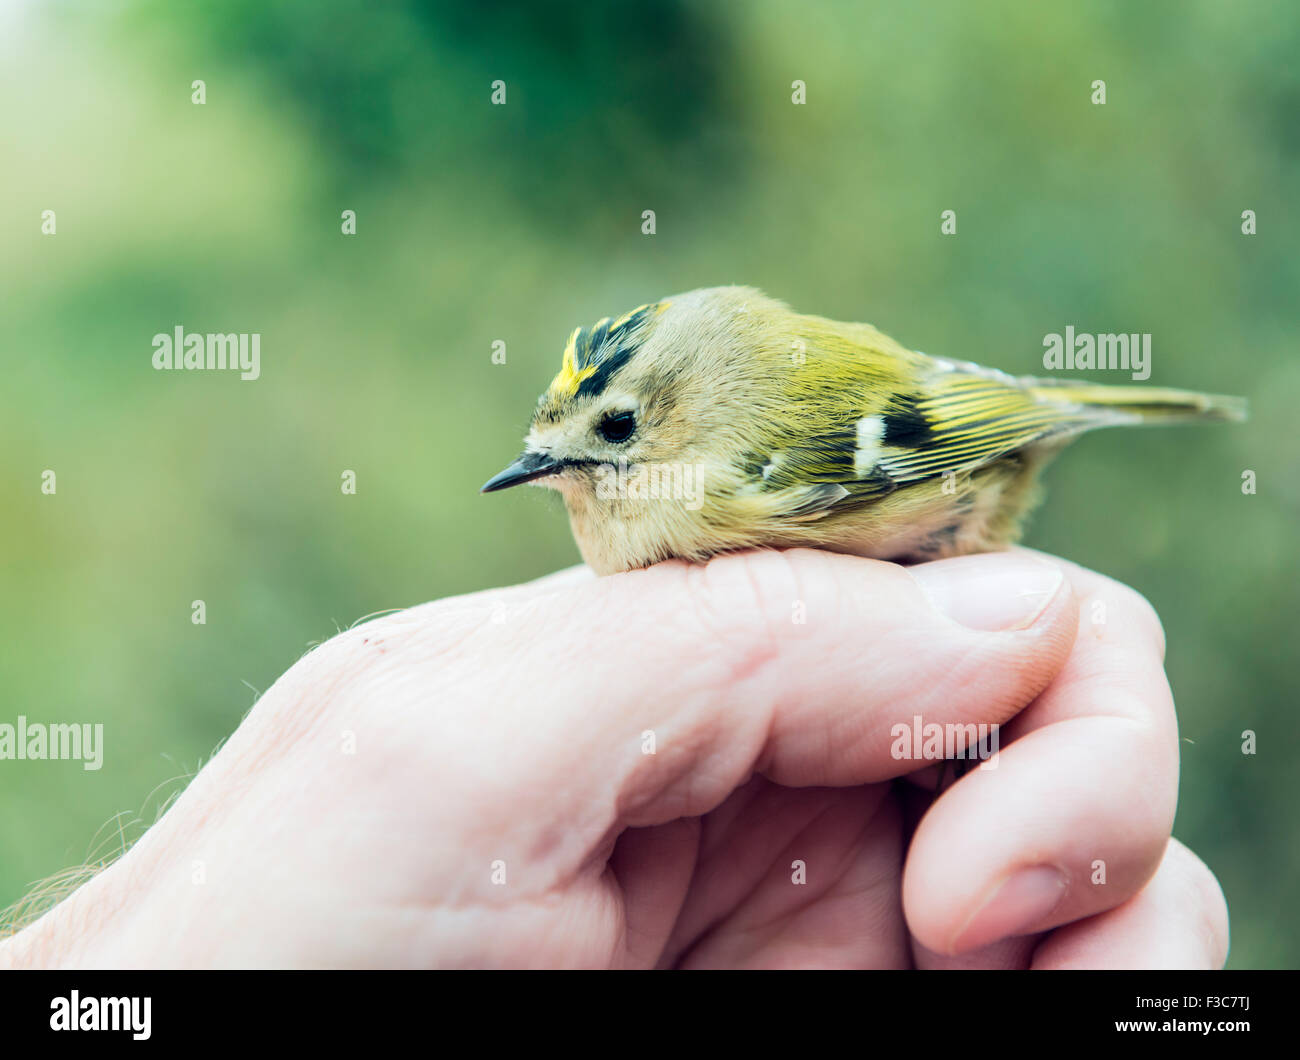 Bird ringing - Stock Image